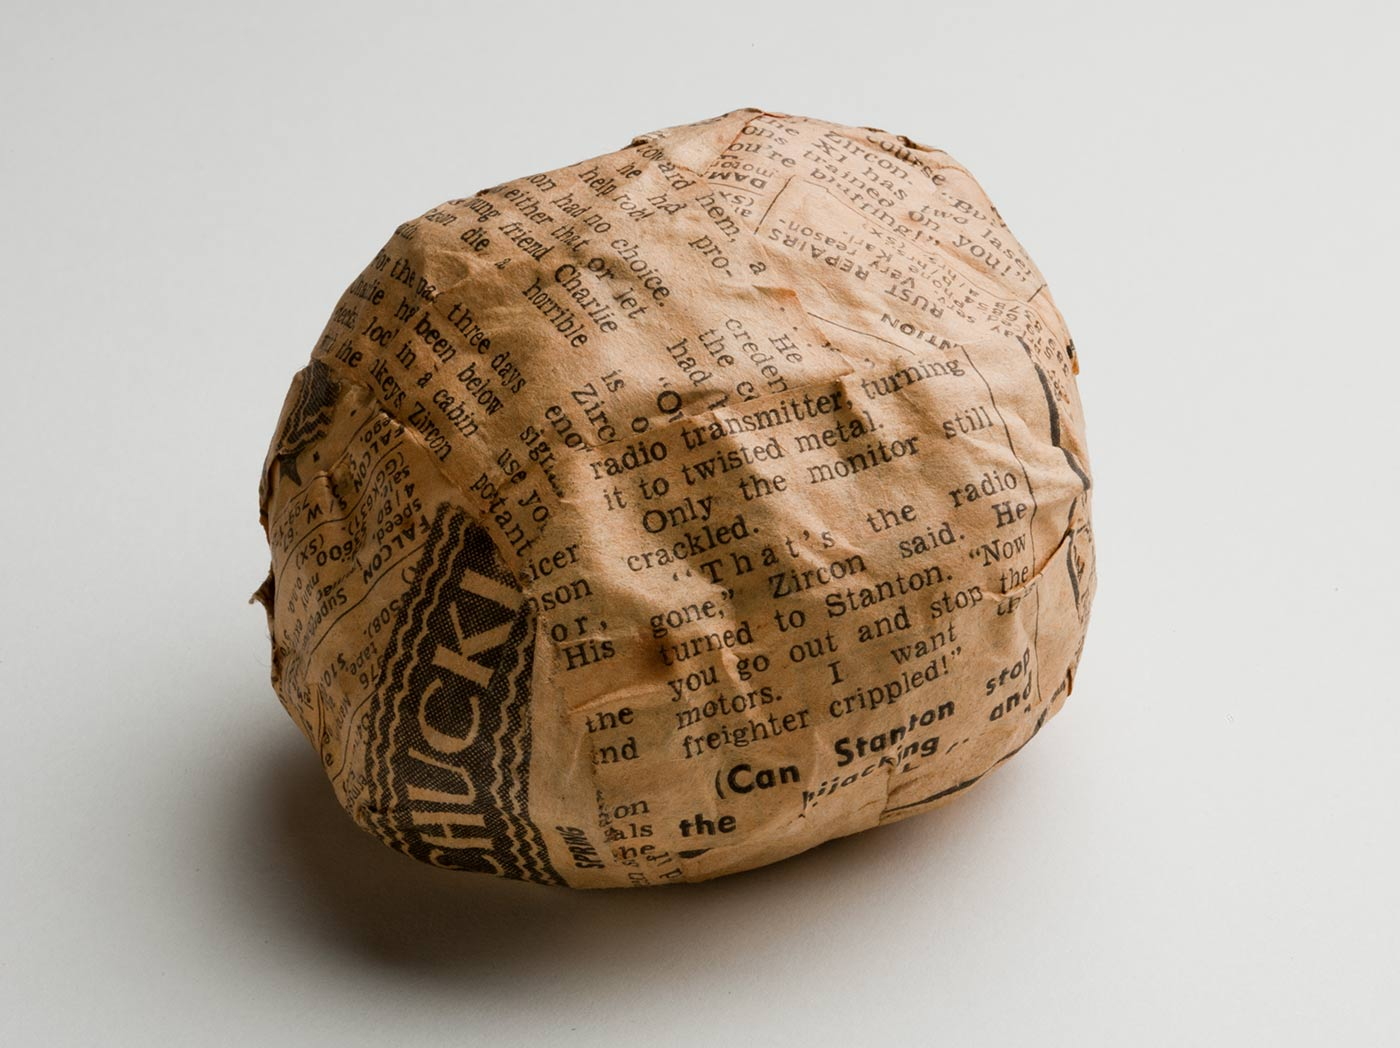 A rougly spherical ball wrapped in yellowing newspaper strips. - click to view larger image